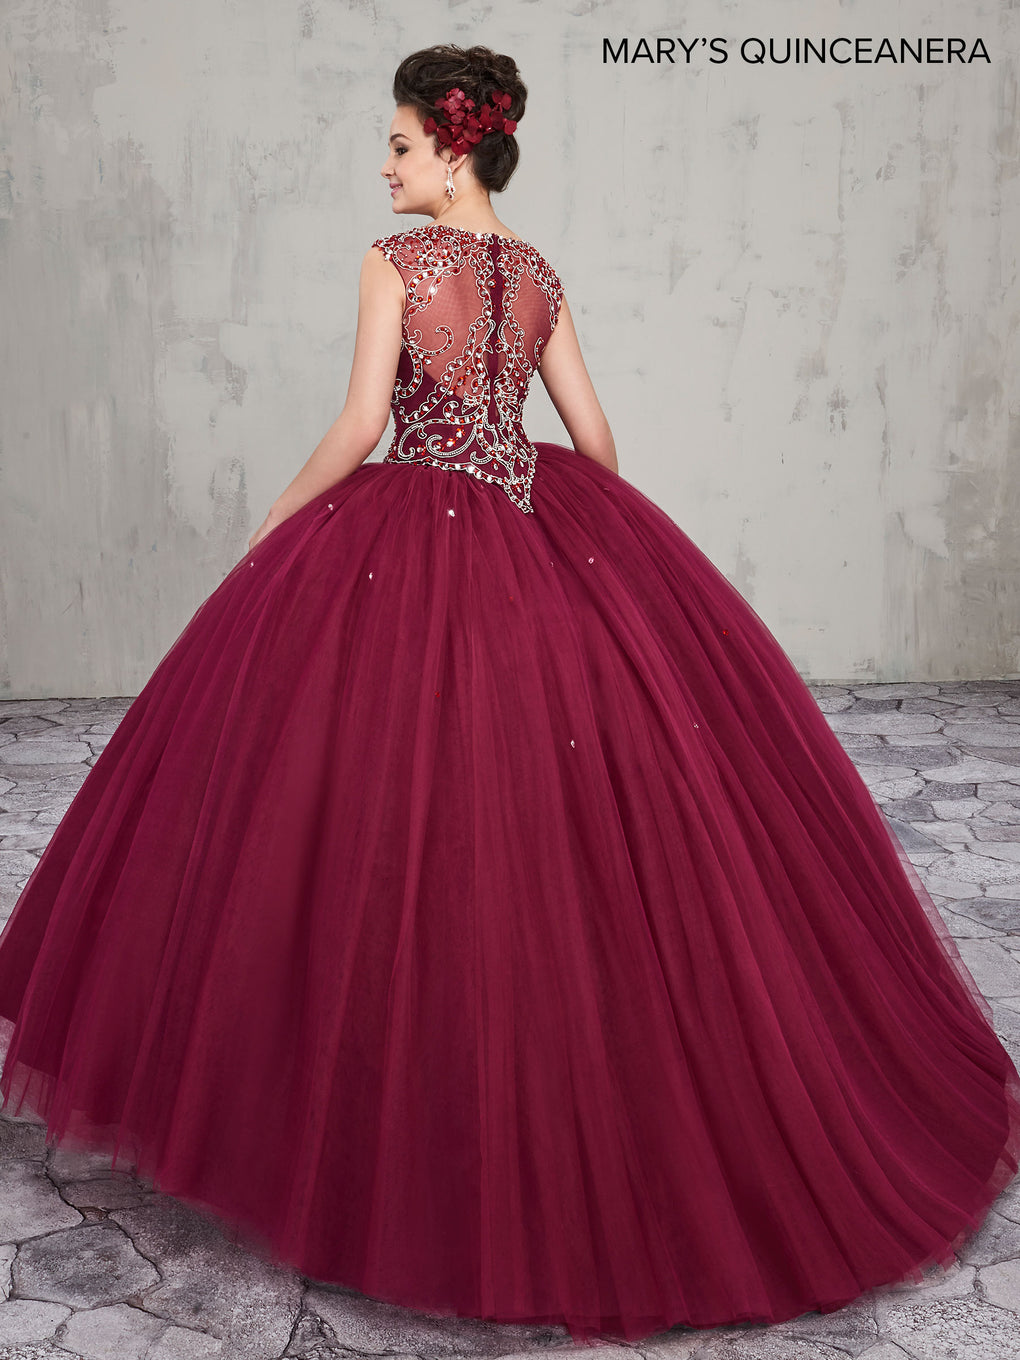 Marys Quinceanera Dresses in Peach, Dark Burgundy, or White Color